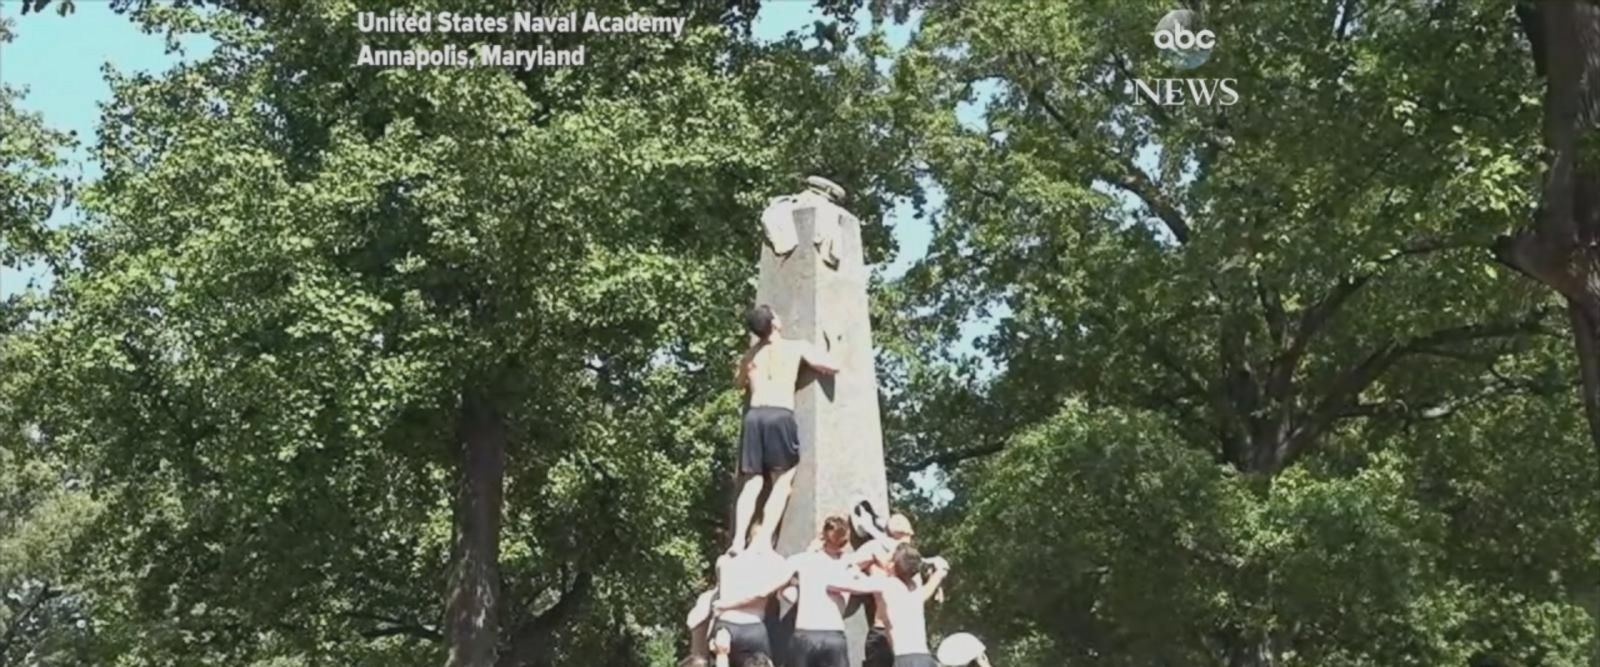 First-year students at the Naval Academy participate in Herndon Climb tradition.